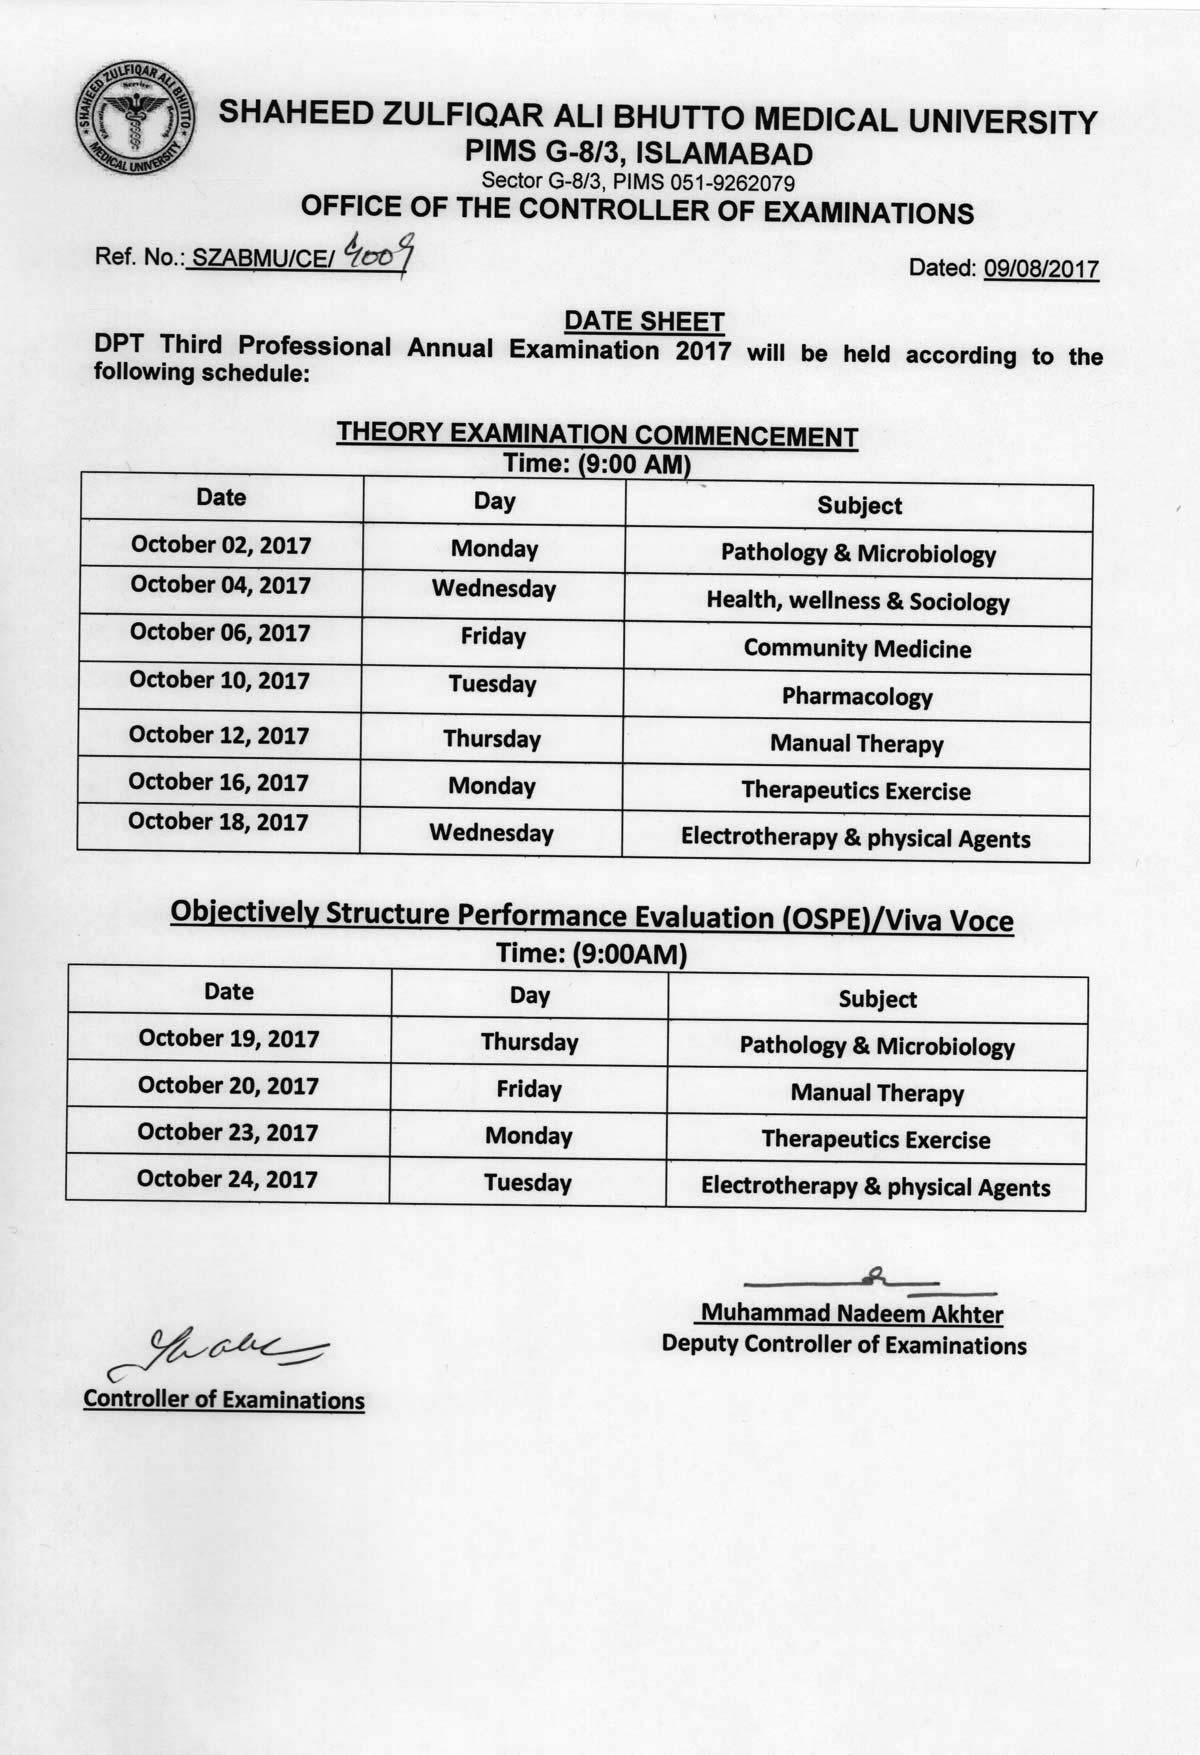 Date sheet - DPT Annual Examinations 2017